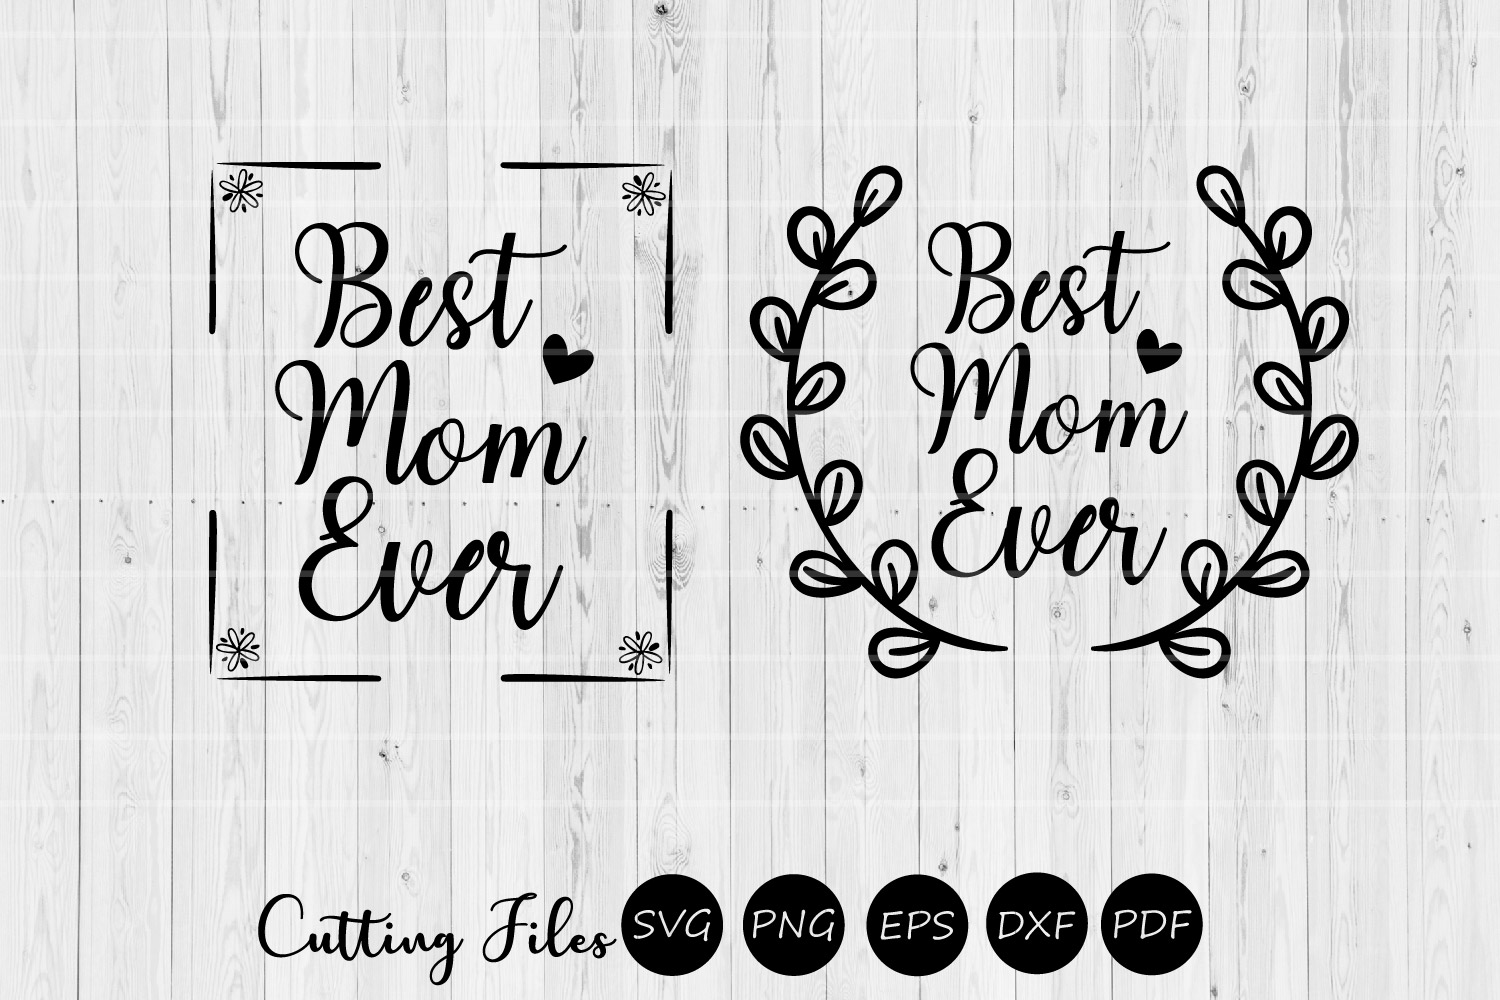 Best mom ever| Mothers day | SVG Cutting files | example image 1